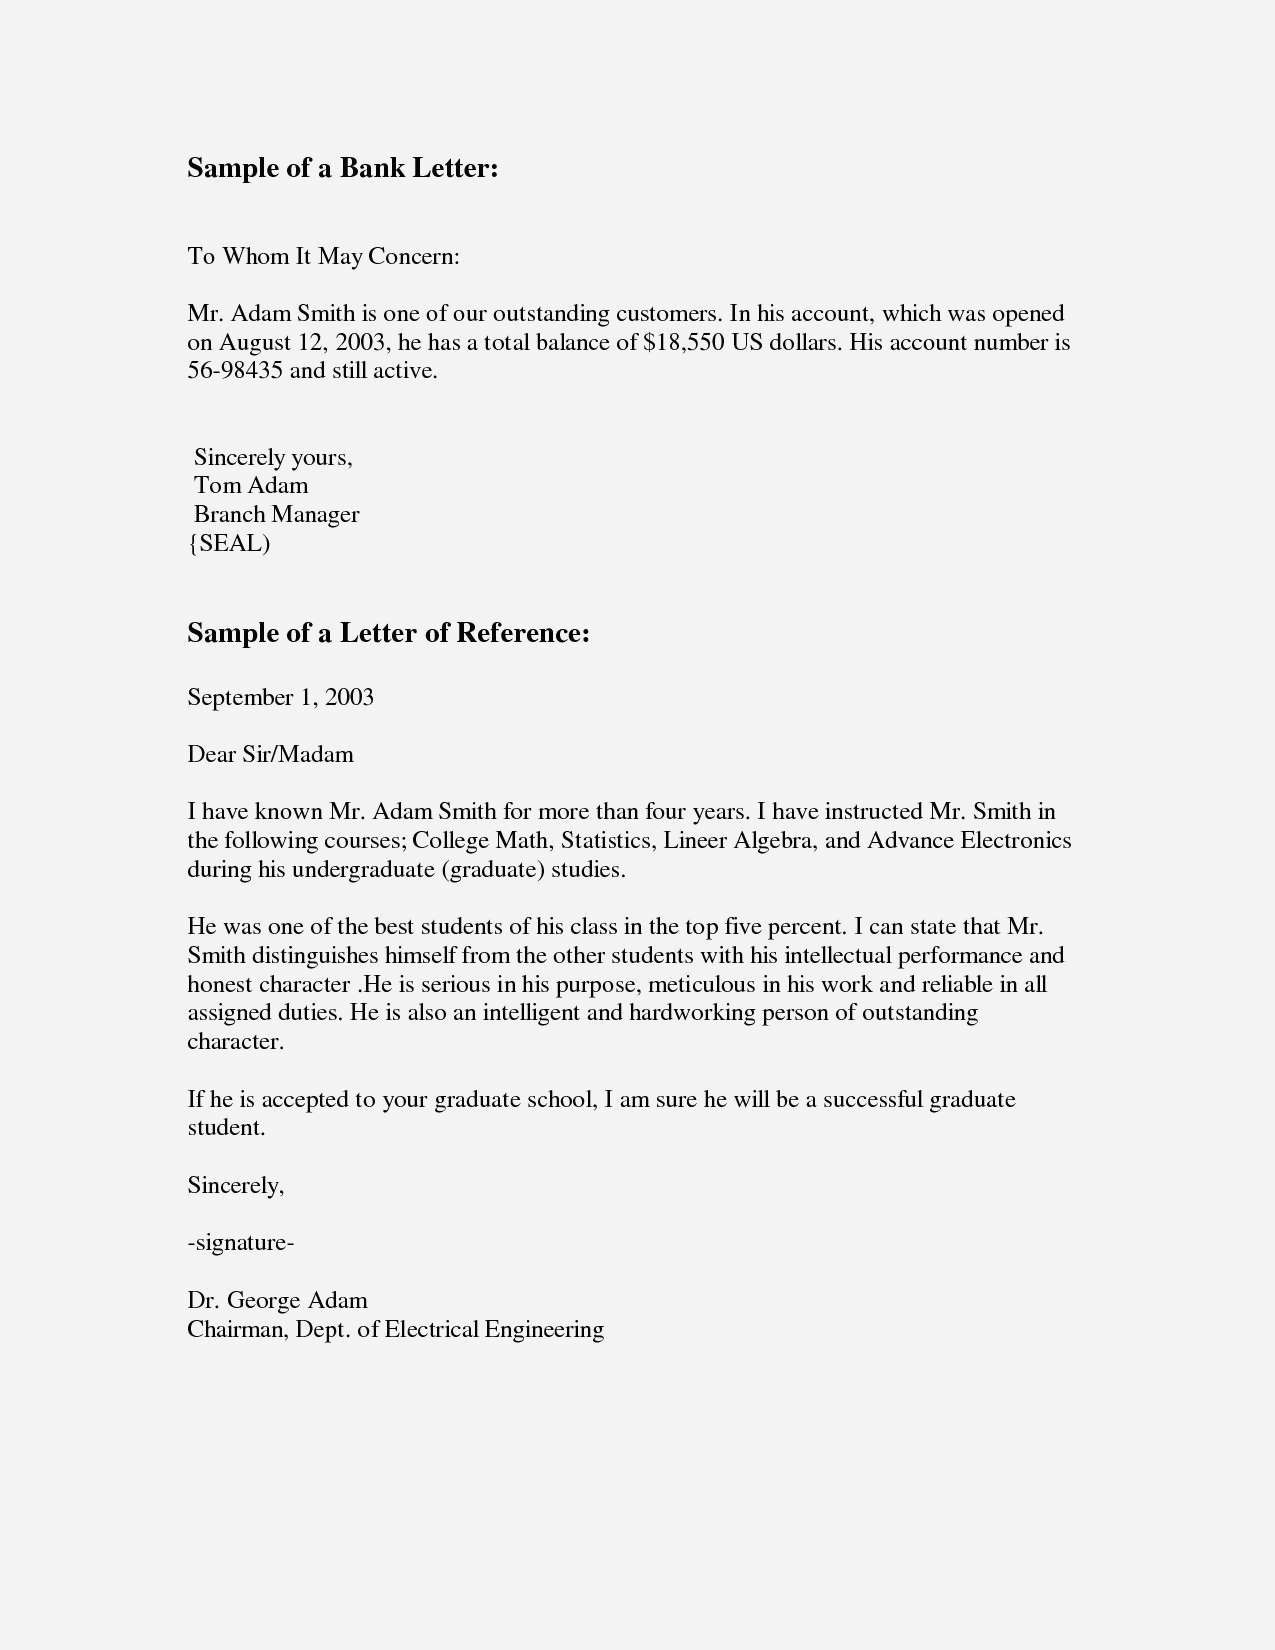 template of letter of recommendation example-Formal Letter Template Unique bylaws Template 0d Wallpapers 50 ficial Letter Template 15-j